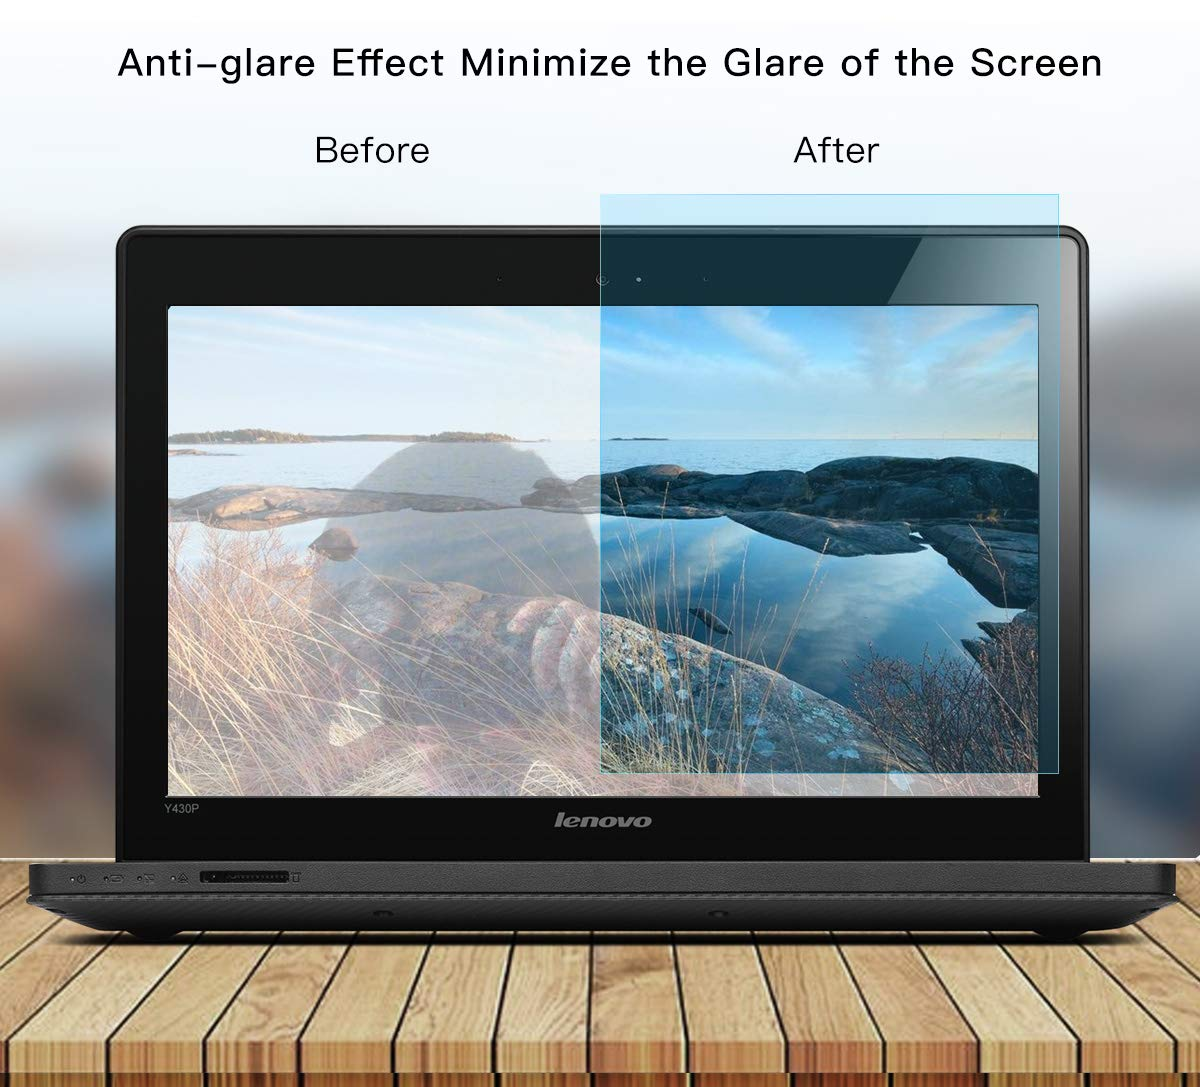 2-Pack 15.6'' Laptop Anti Blue Light Screen Protector, Anti Glare Computer Filter Blue Light Blocking Screen Cover for HP 15.6 Laptop   HP Pavilion 15.6'' BlueLight & Glare Defense Screen Protector by imComor (Image #6)